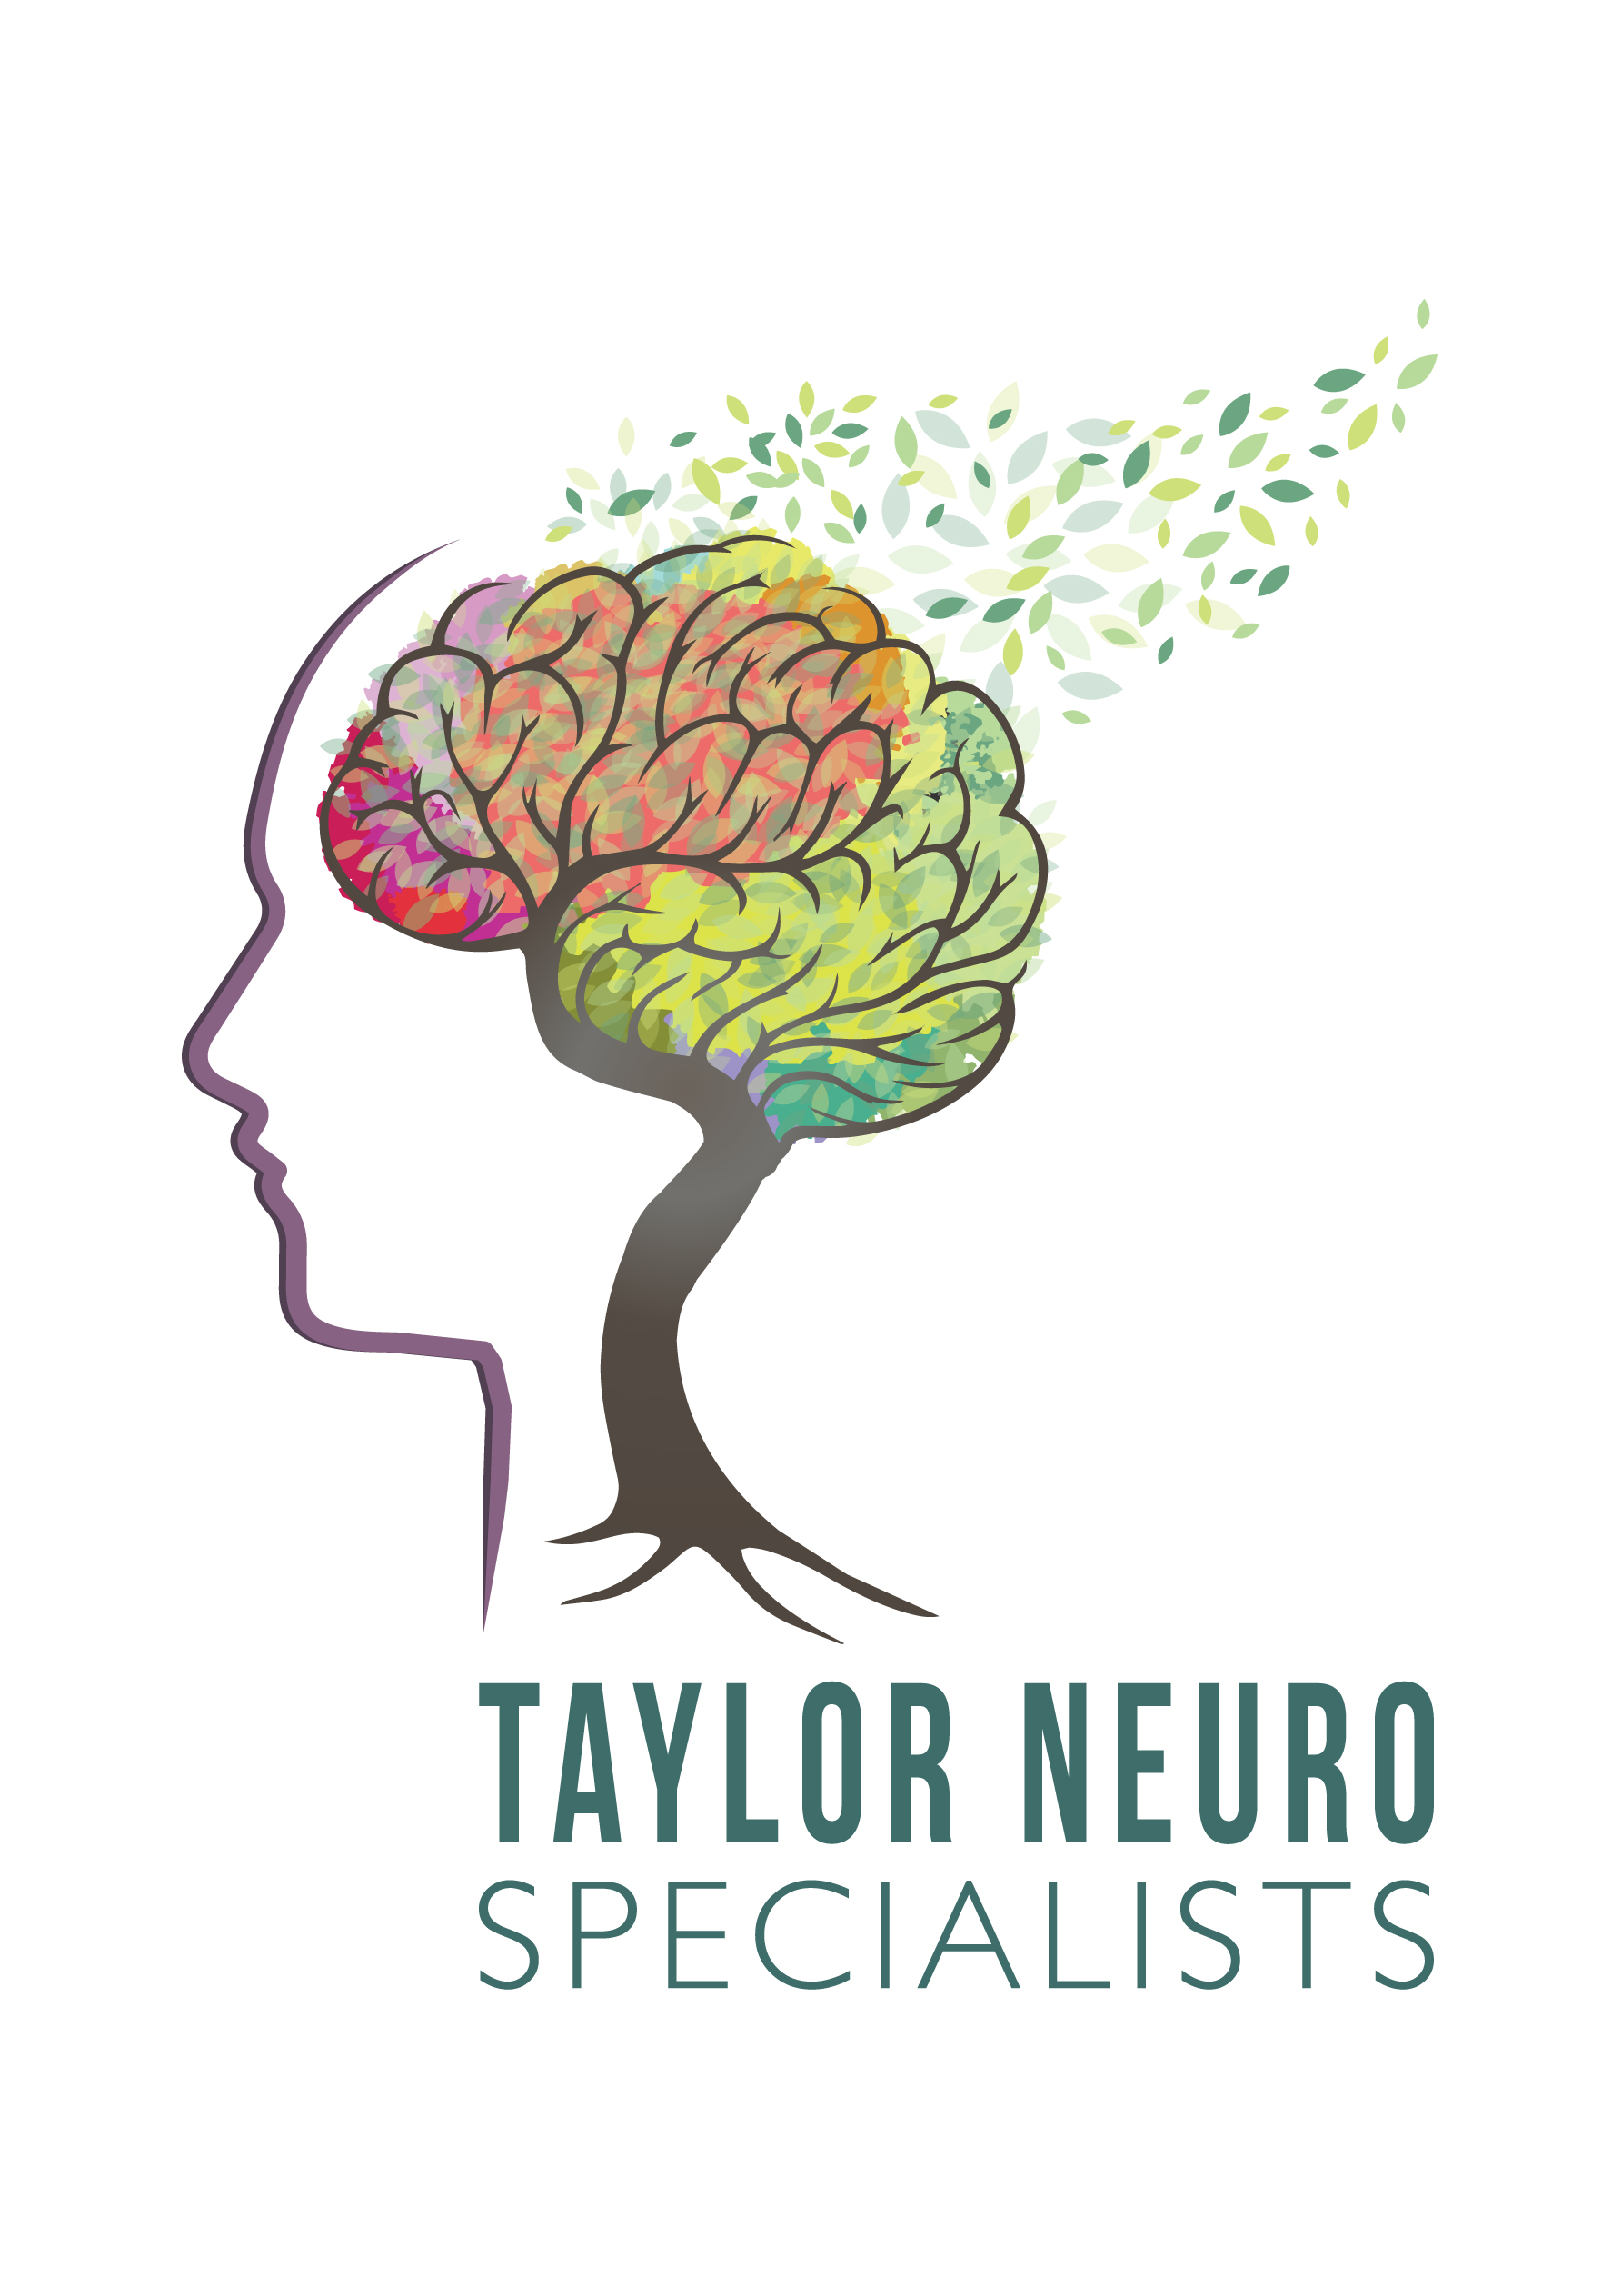 Taylor Neuro Specialists